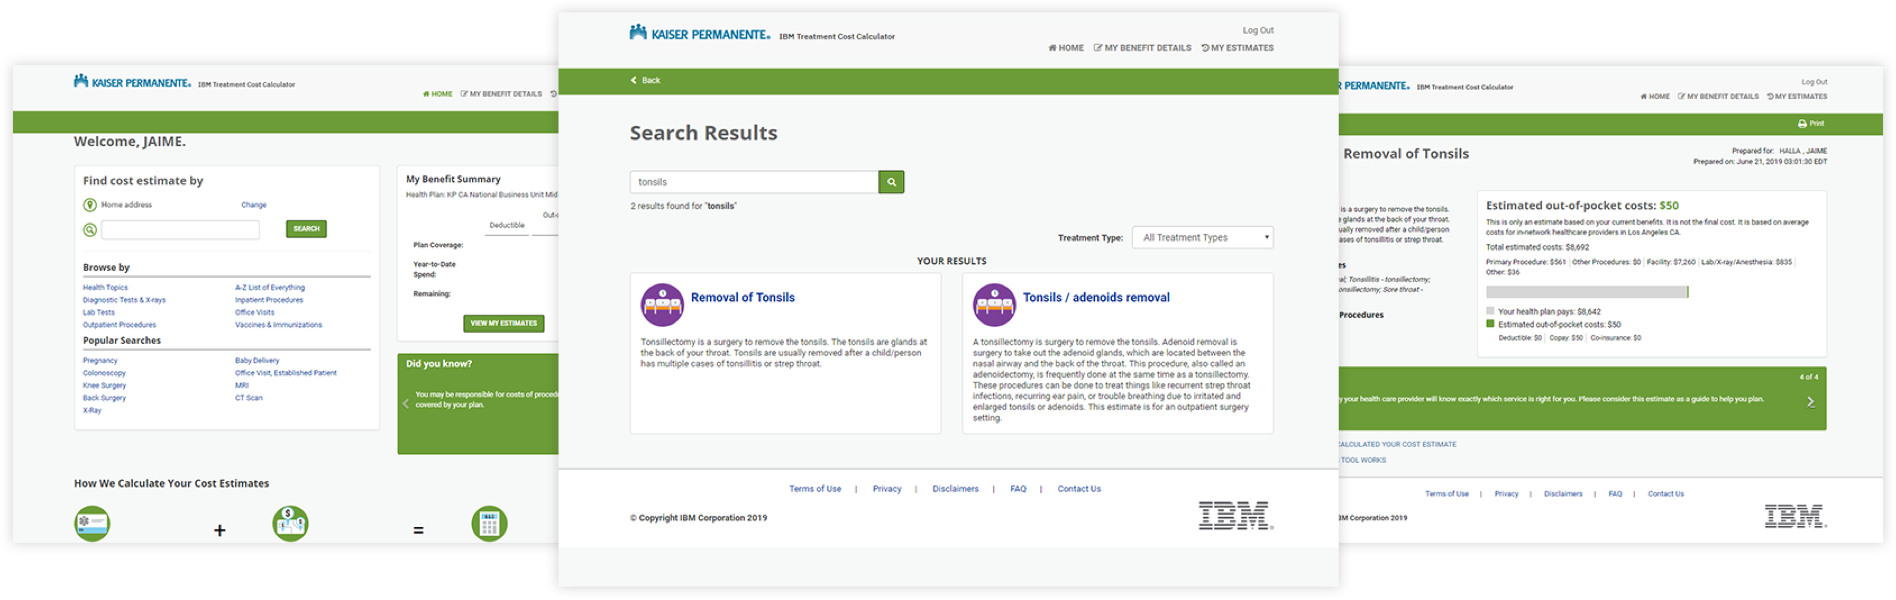 Example screenshots of how to search for the estimated costs of procedures according to your health care plan on the IBM treatment cost calculator.